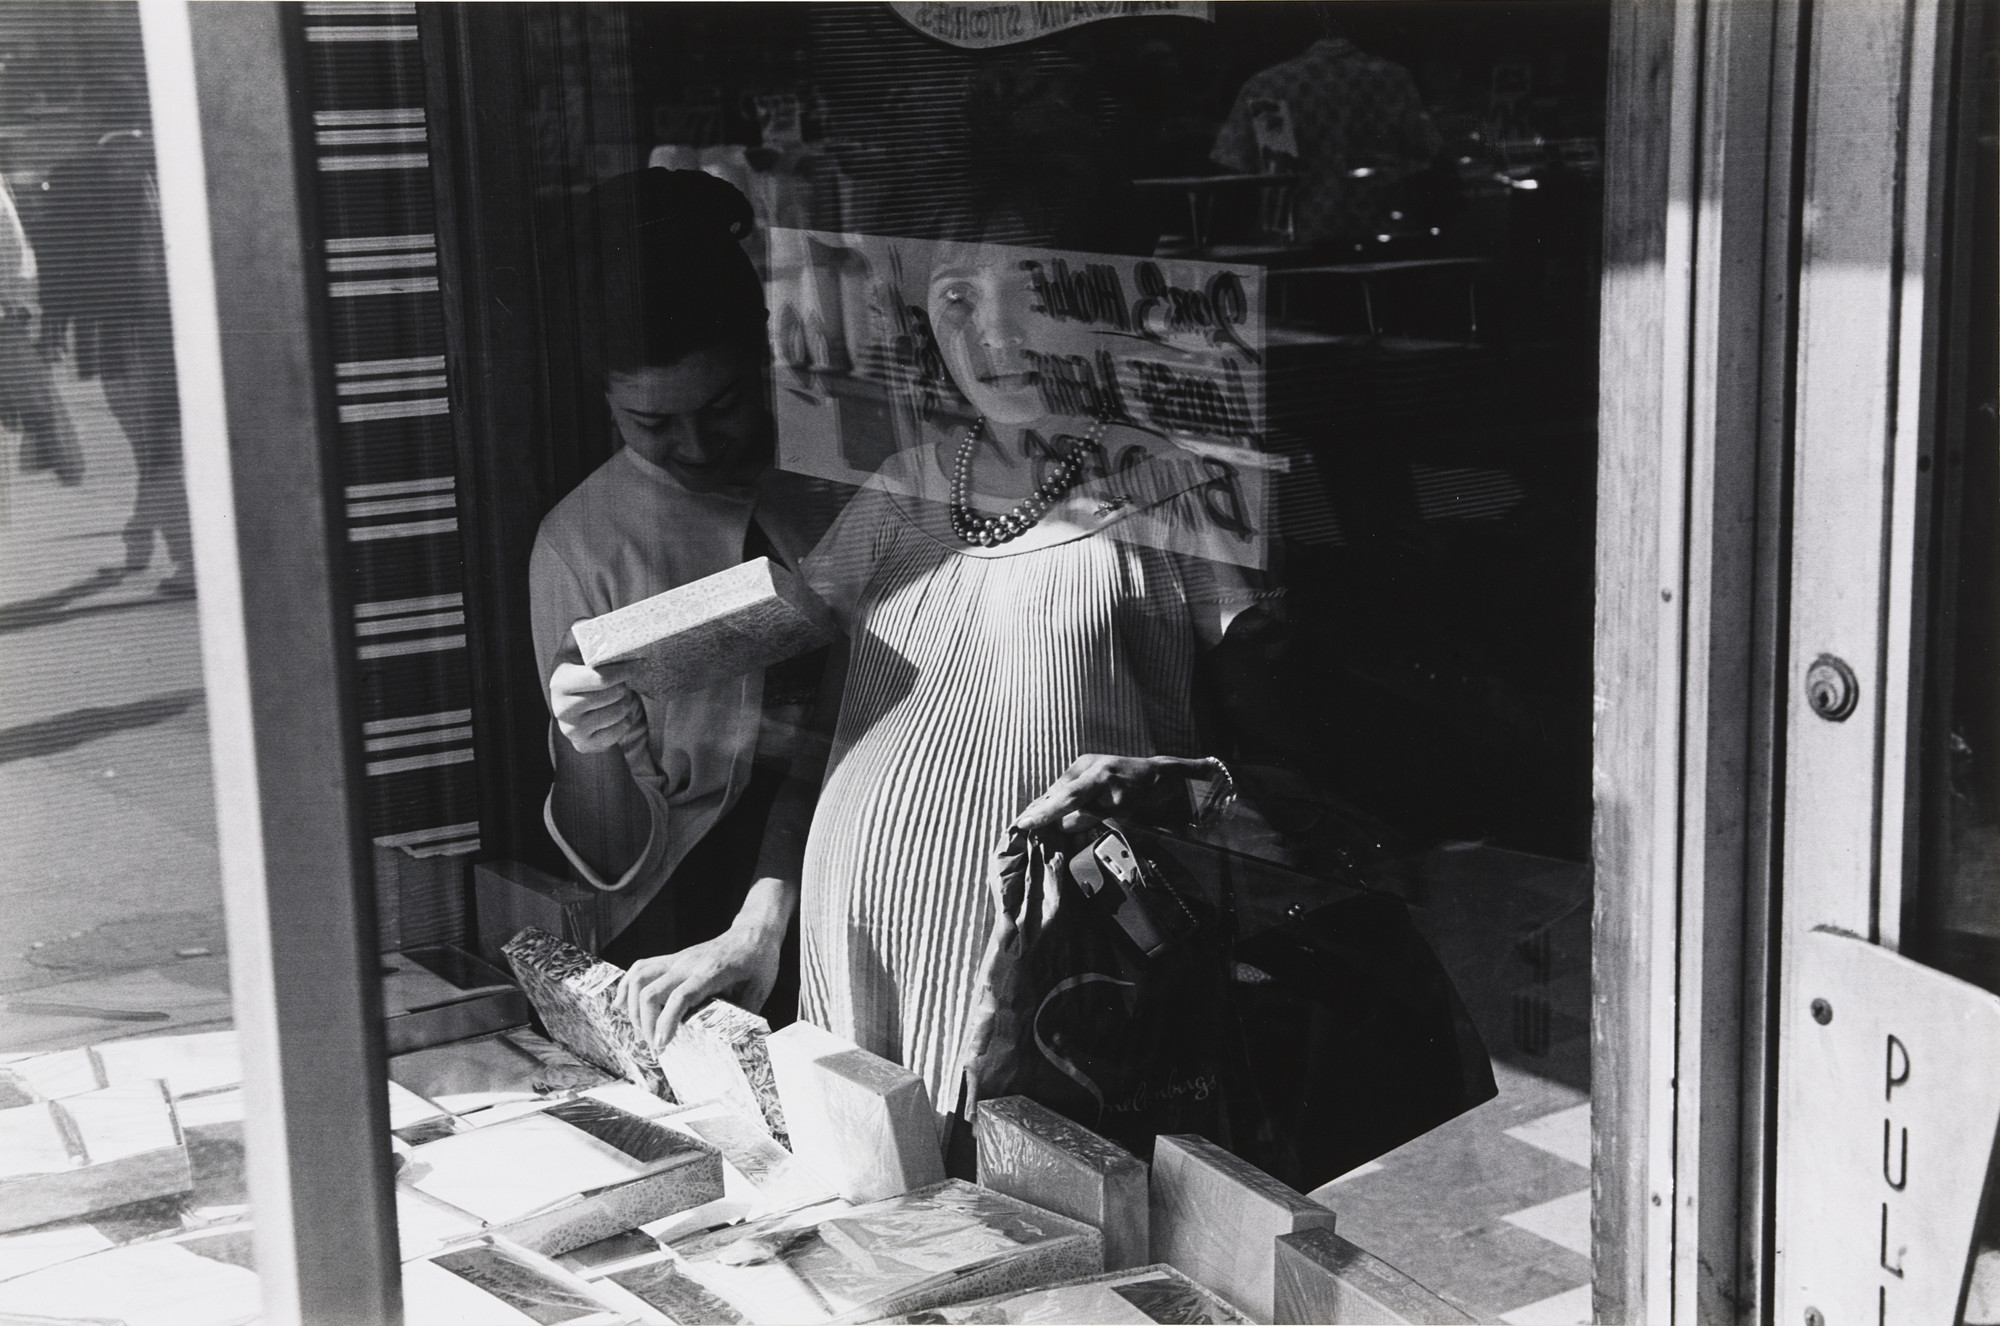 Lee Friedlander. New York City. 1963